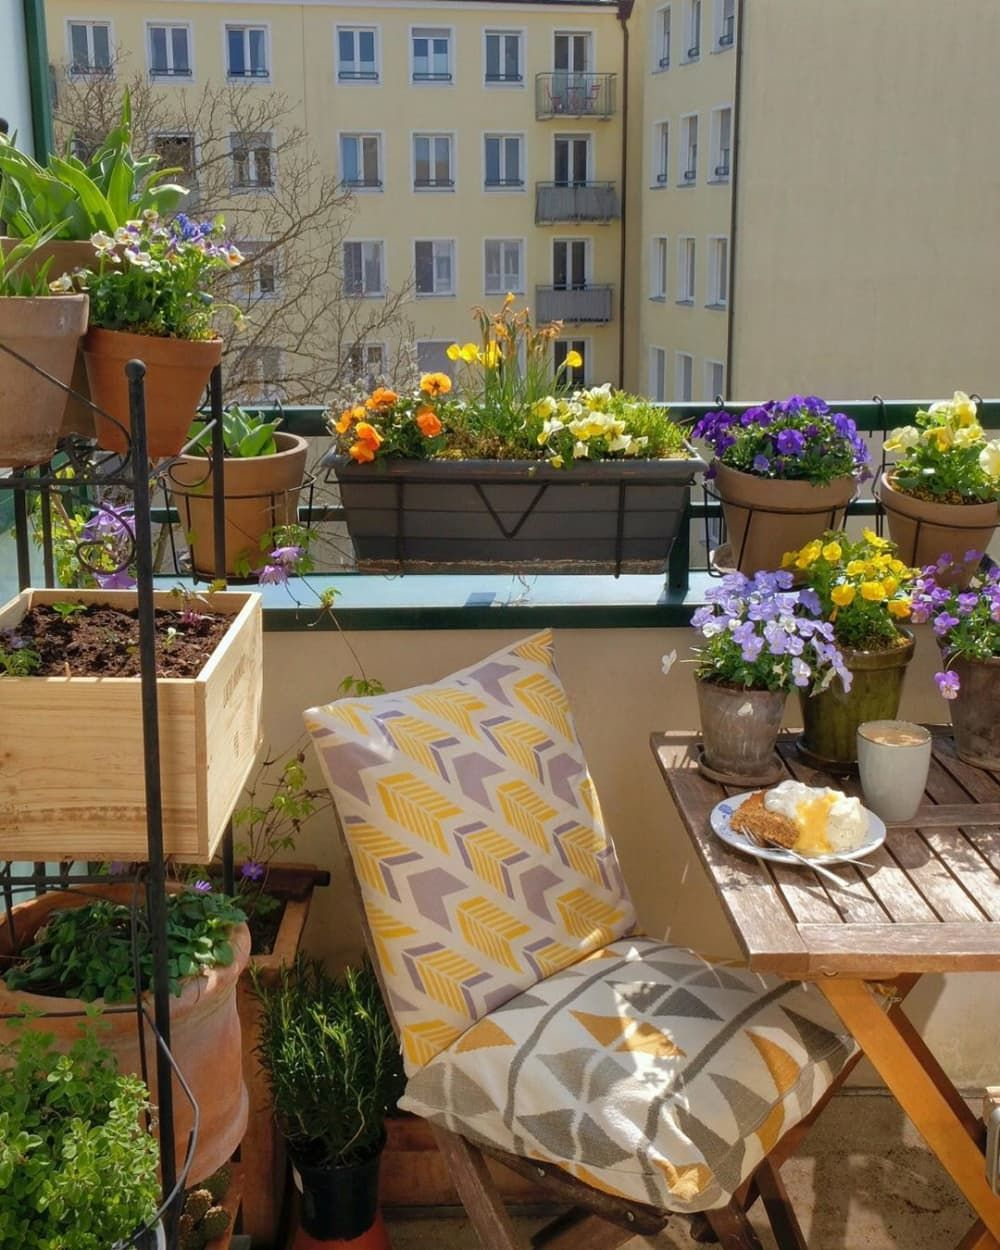 How To Grow Plants In A Small Apartment